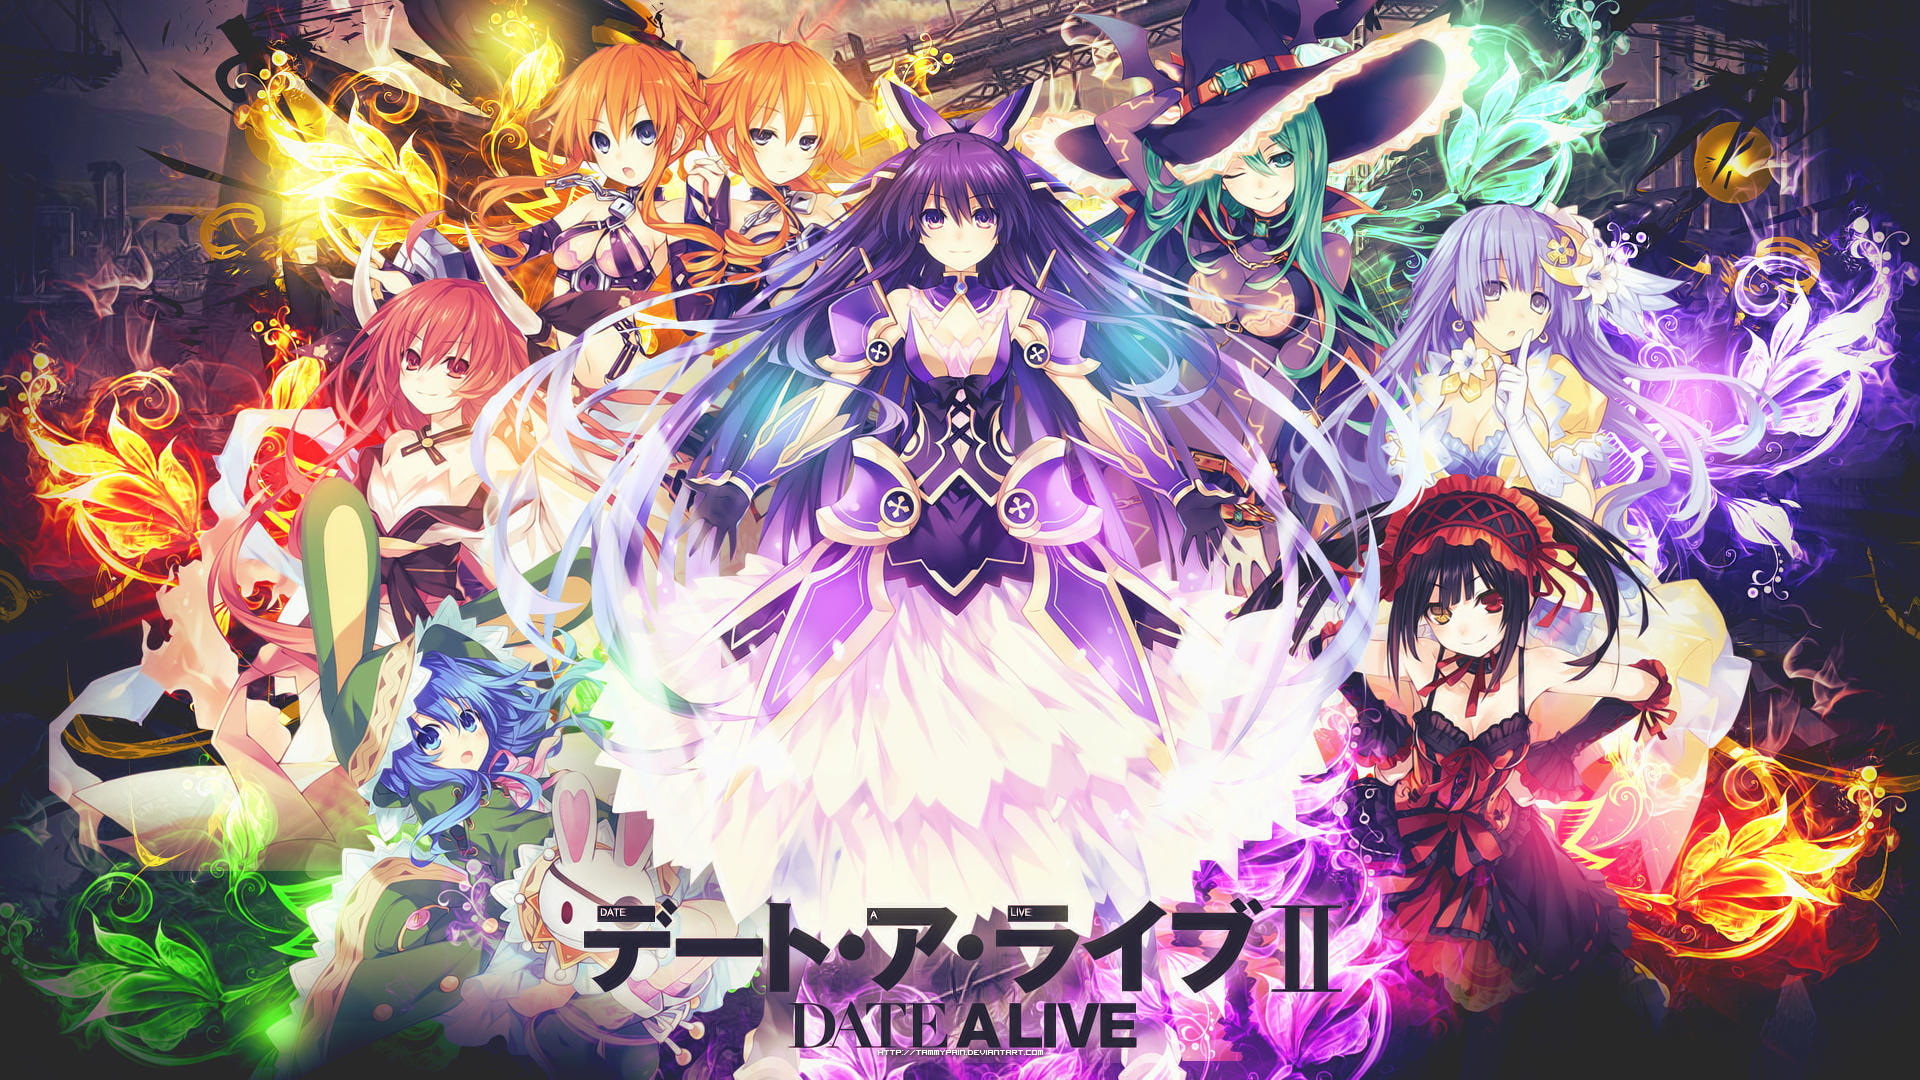 All Of The Girls From Date A Live 1920x1080 Need Iphone 6s Plus Wallpaper Background For Iphone6splus Follow Anime Date Anime Wallpaper Date A Live